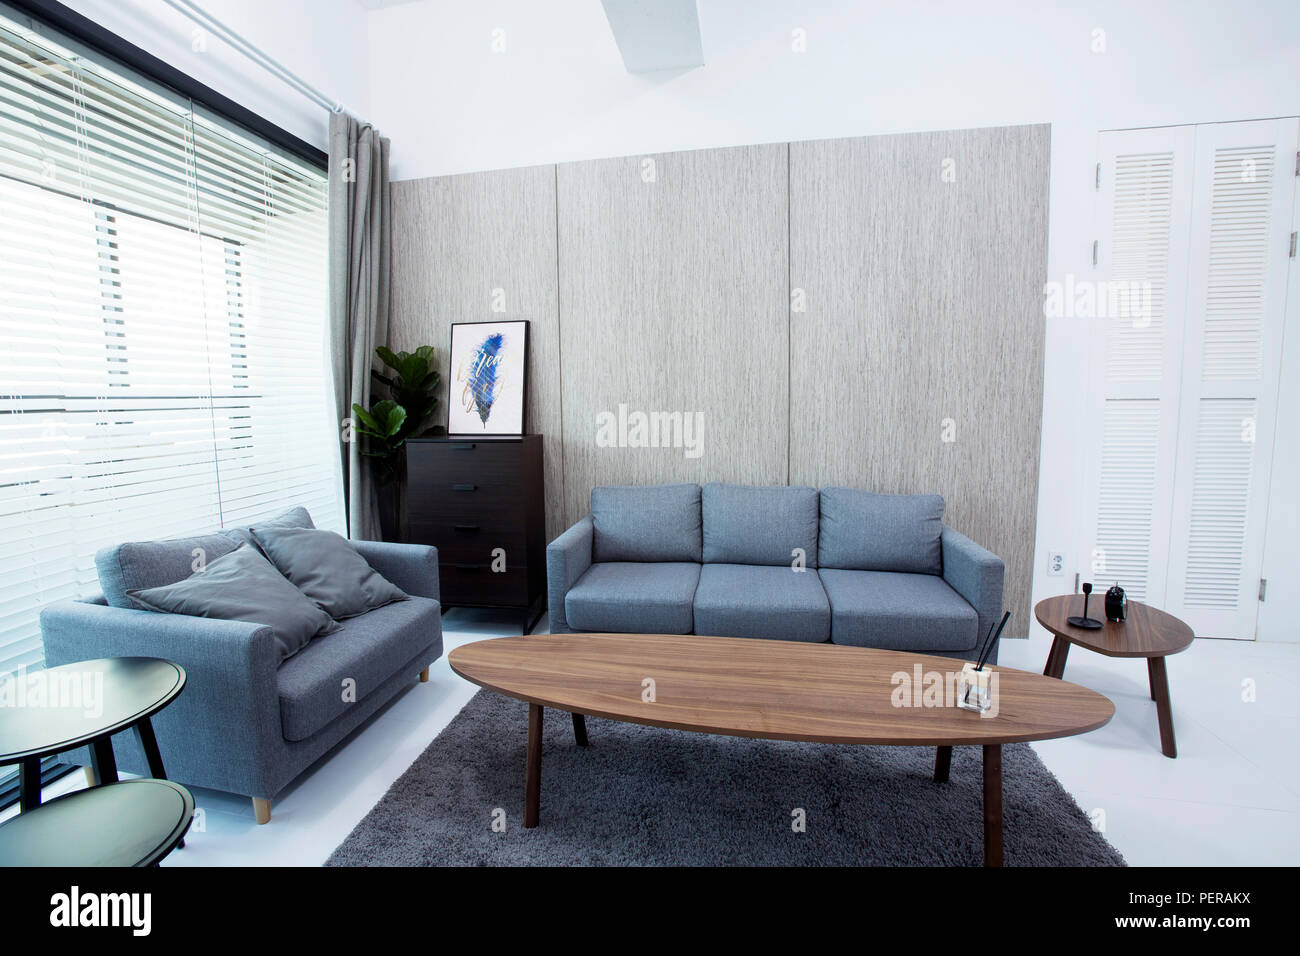 Modern Space Interiors Design Stock Photo. Living Room, Office Room,  Restaurant And Hair Salon. 036